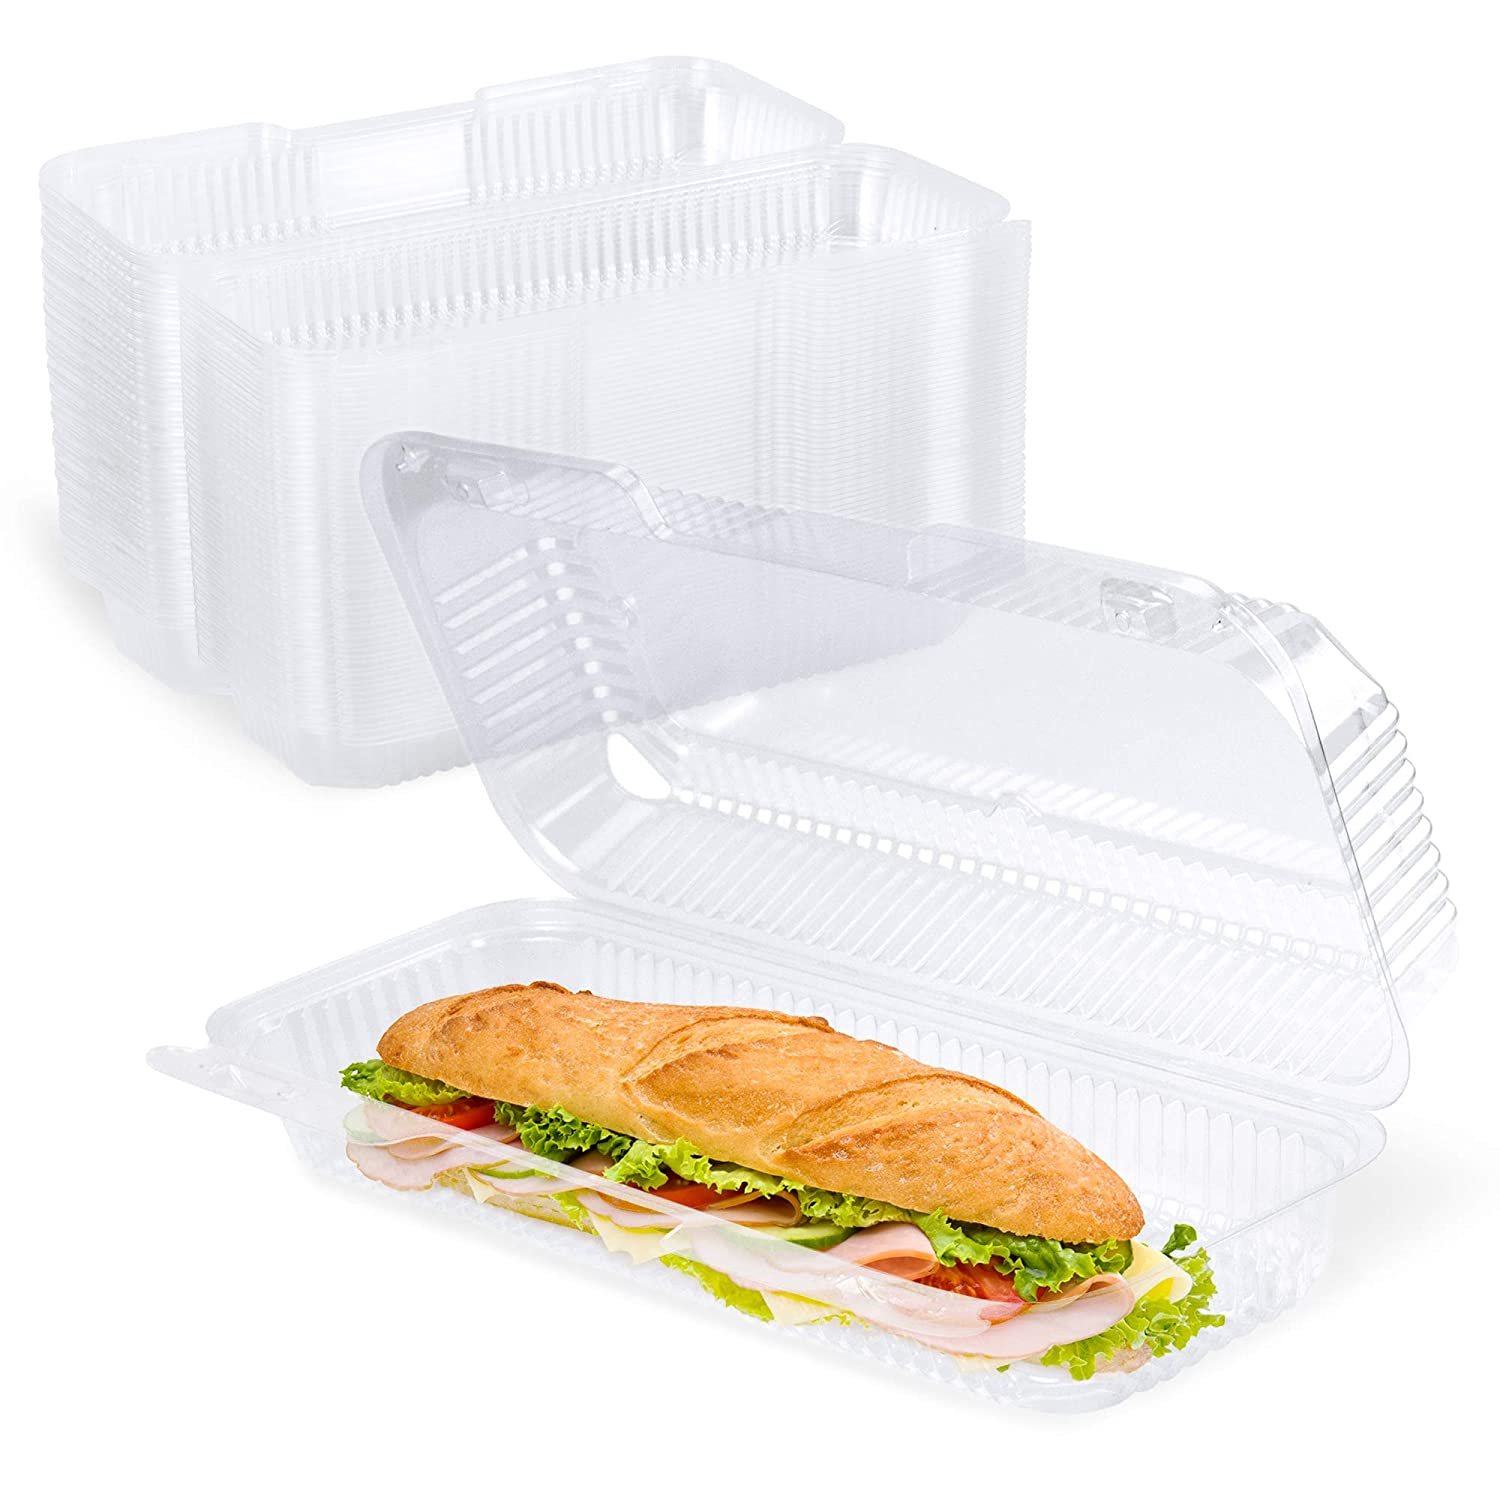 """[25 Pack] Clear Hinged Plastic Containers - 12x5x3"""" Single Compartment Clamshell Food Containers for Cake Roll, Cookie, Sandwich, and Baked Goods - Disposable Plastic Togo Boxes with Lids for Bakery"""